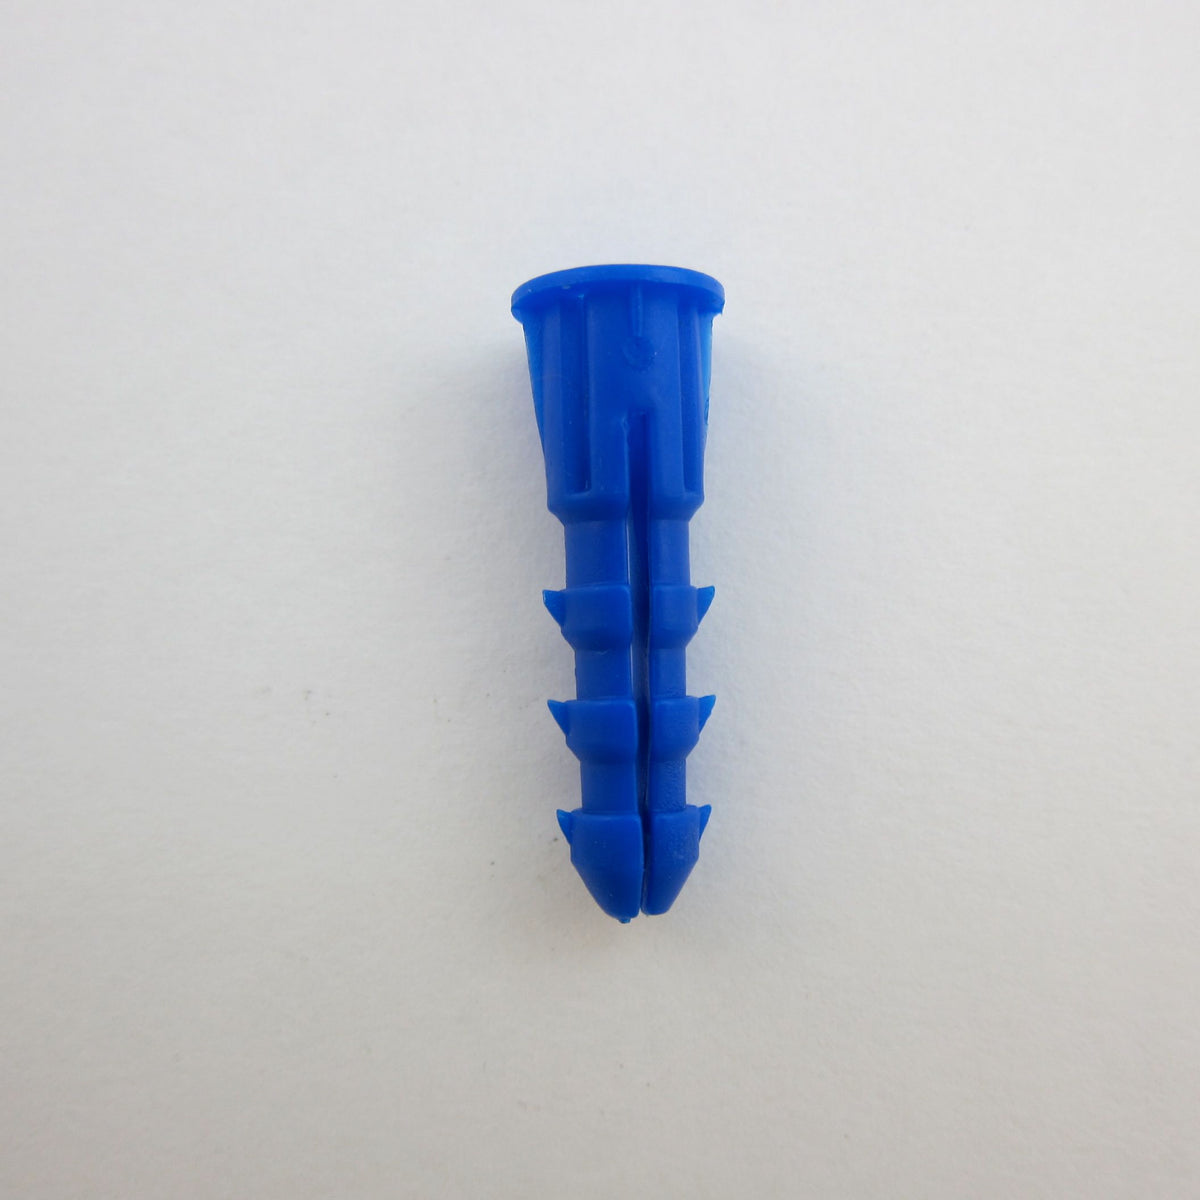 #14-16 Plastic Anchor - Blue - Security Screw Anchor